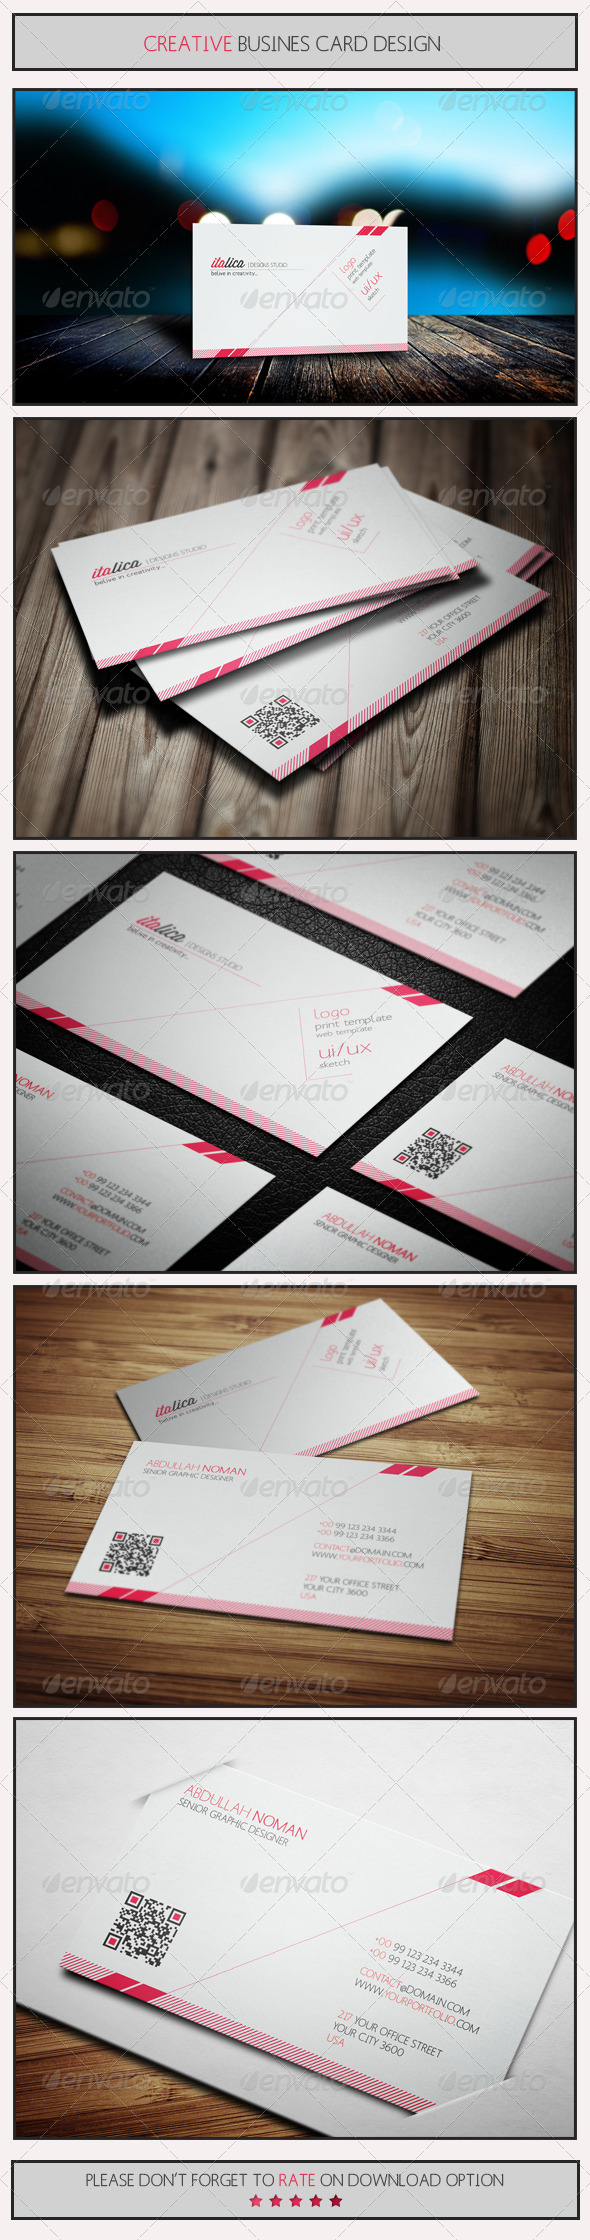 GraphicRiver Creative Business Card Design by Italica 5580497